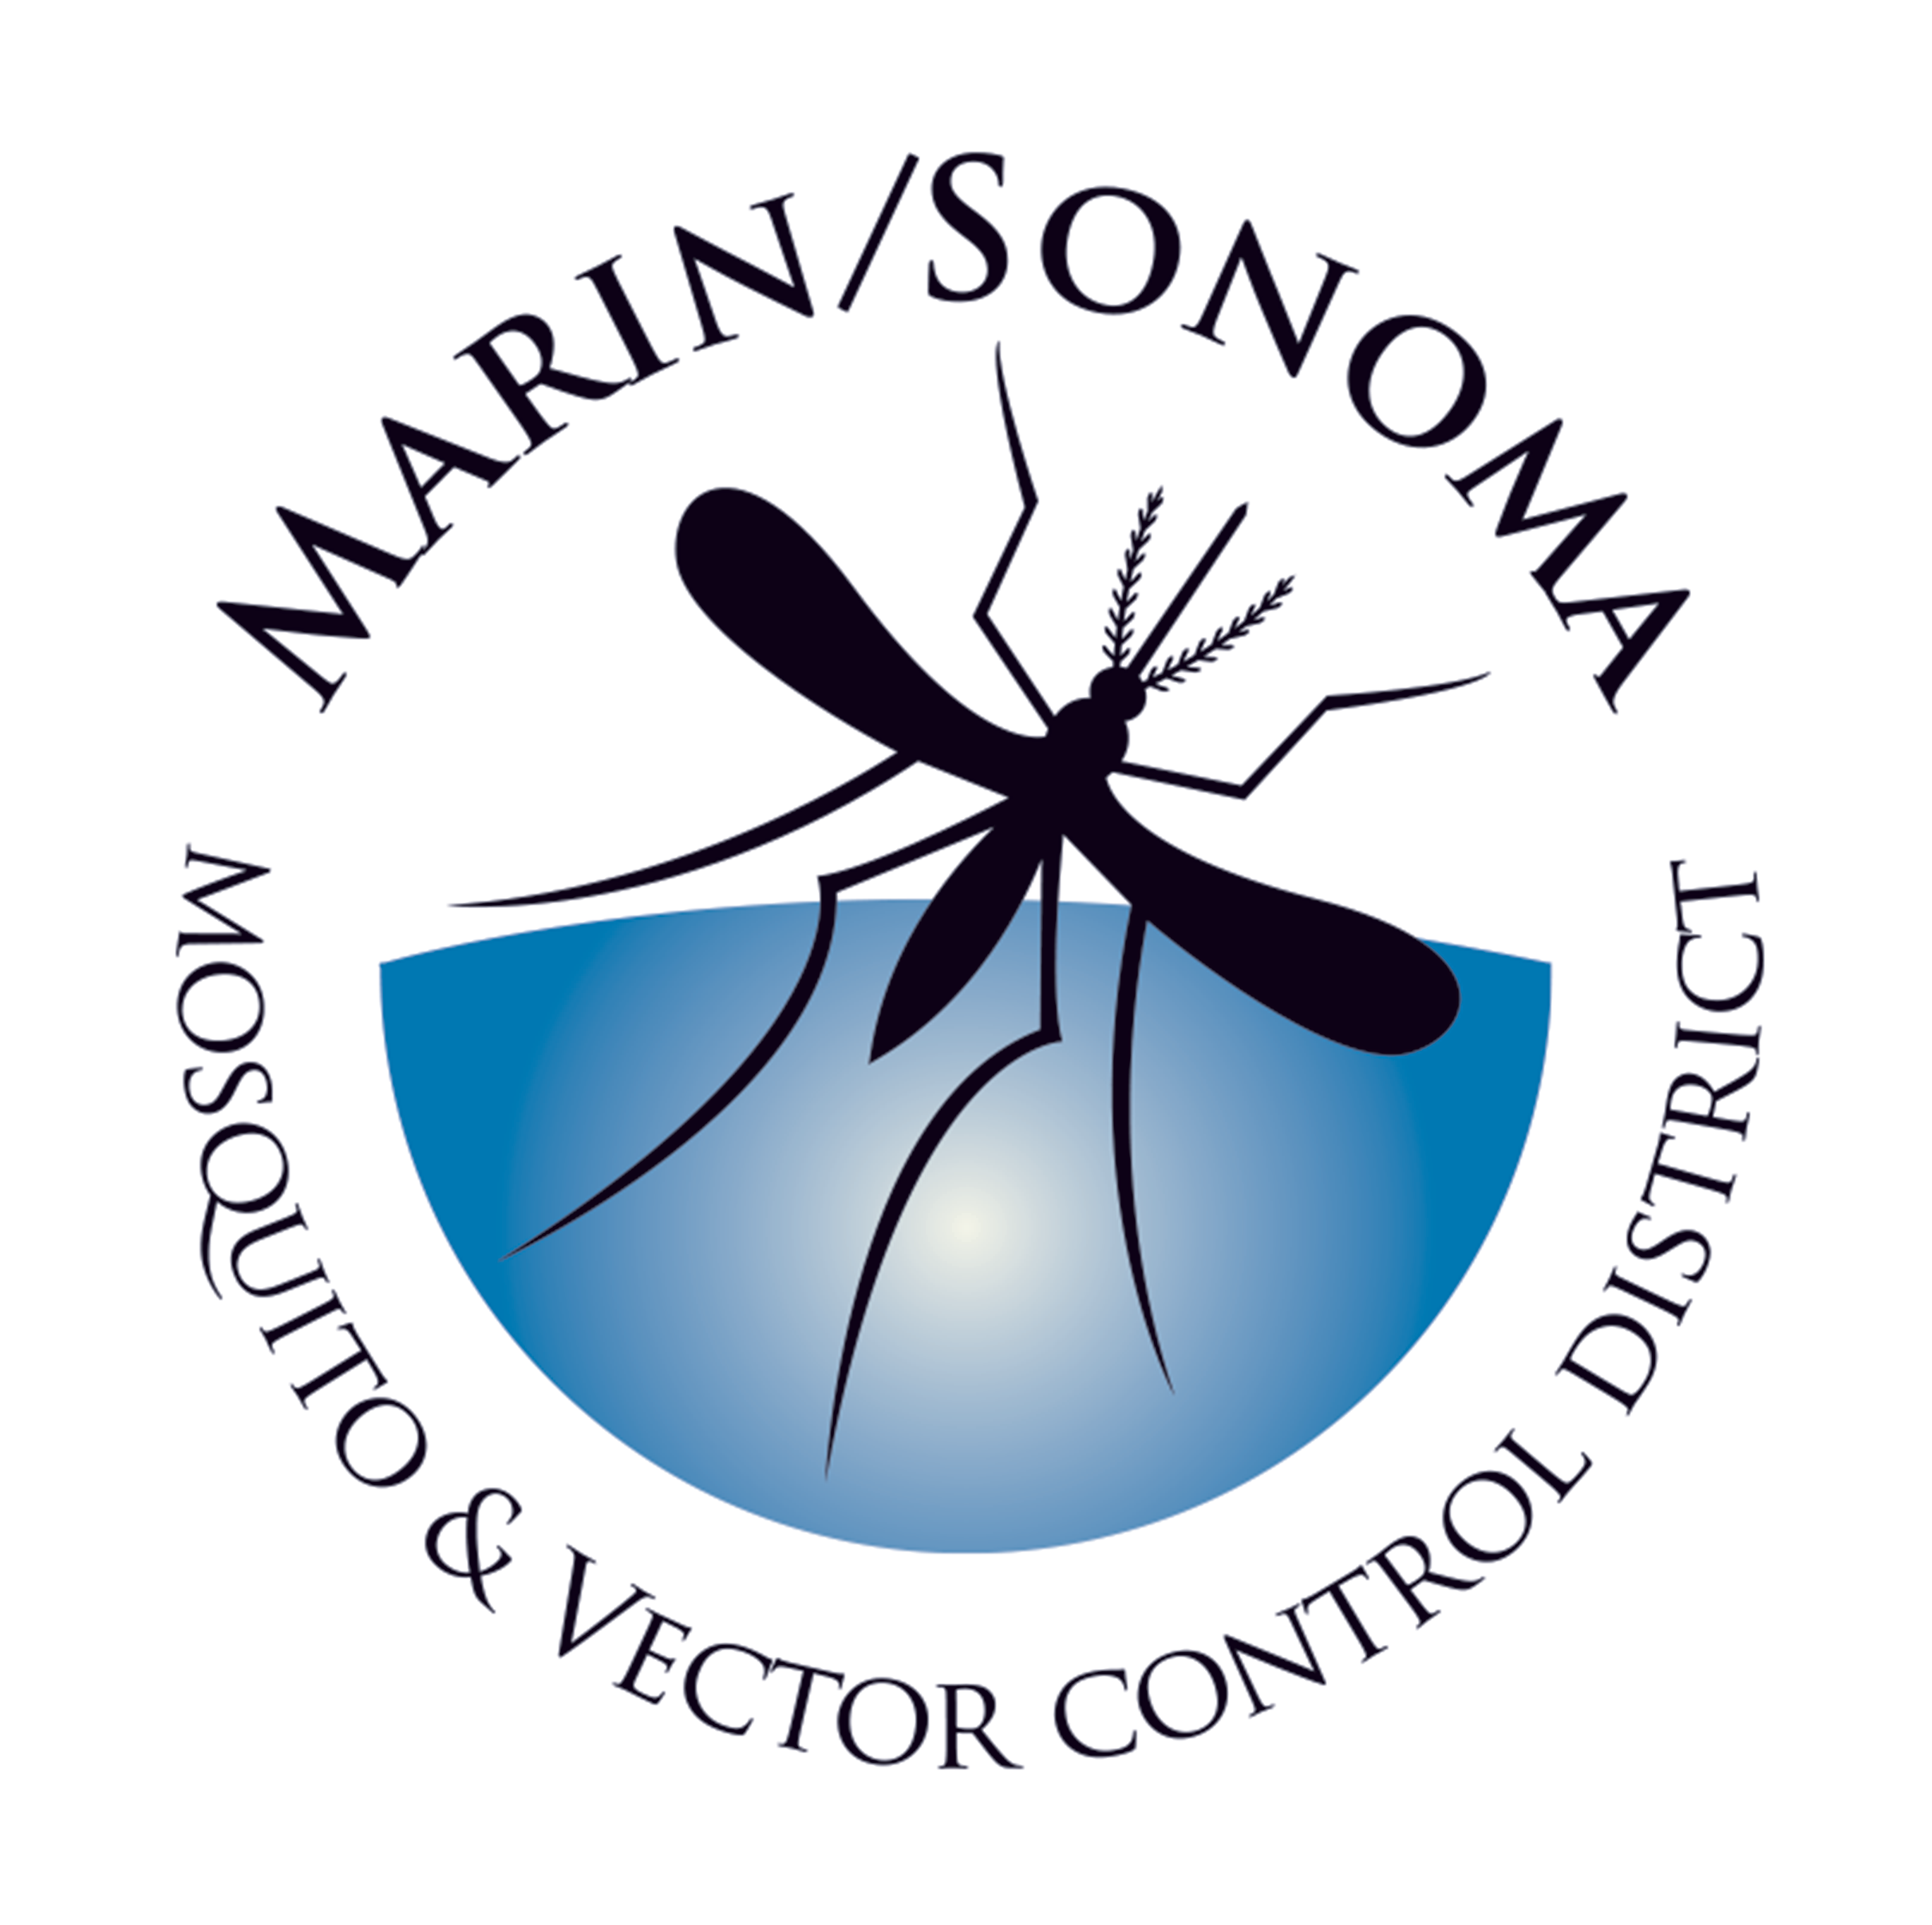 Marin/Sonoma Mosquito and Vector Control District